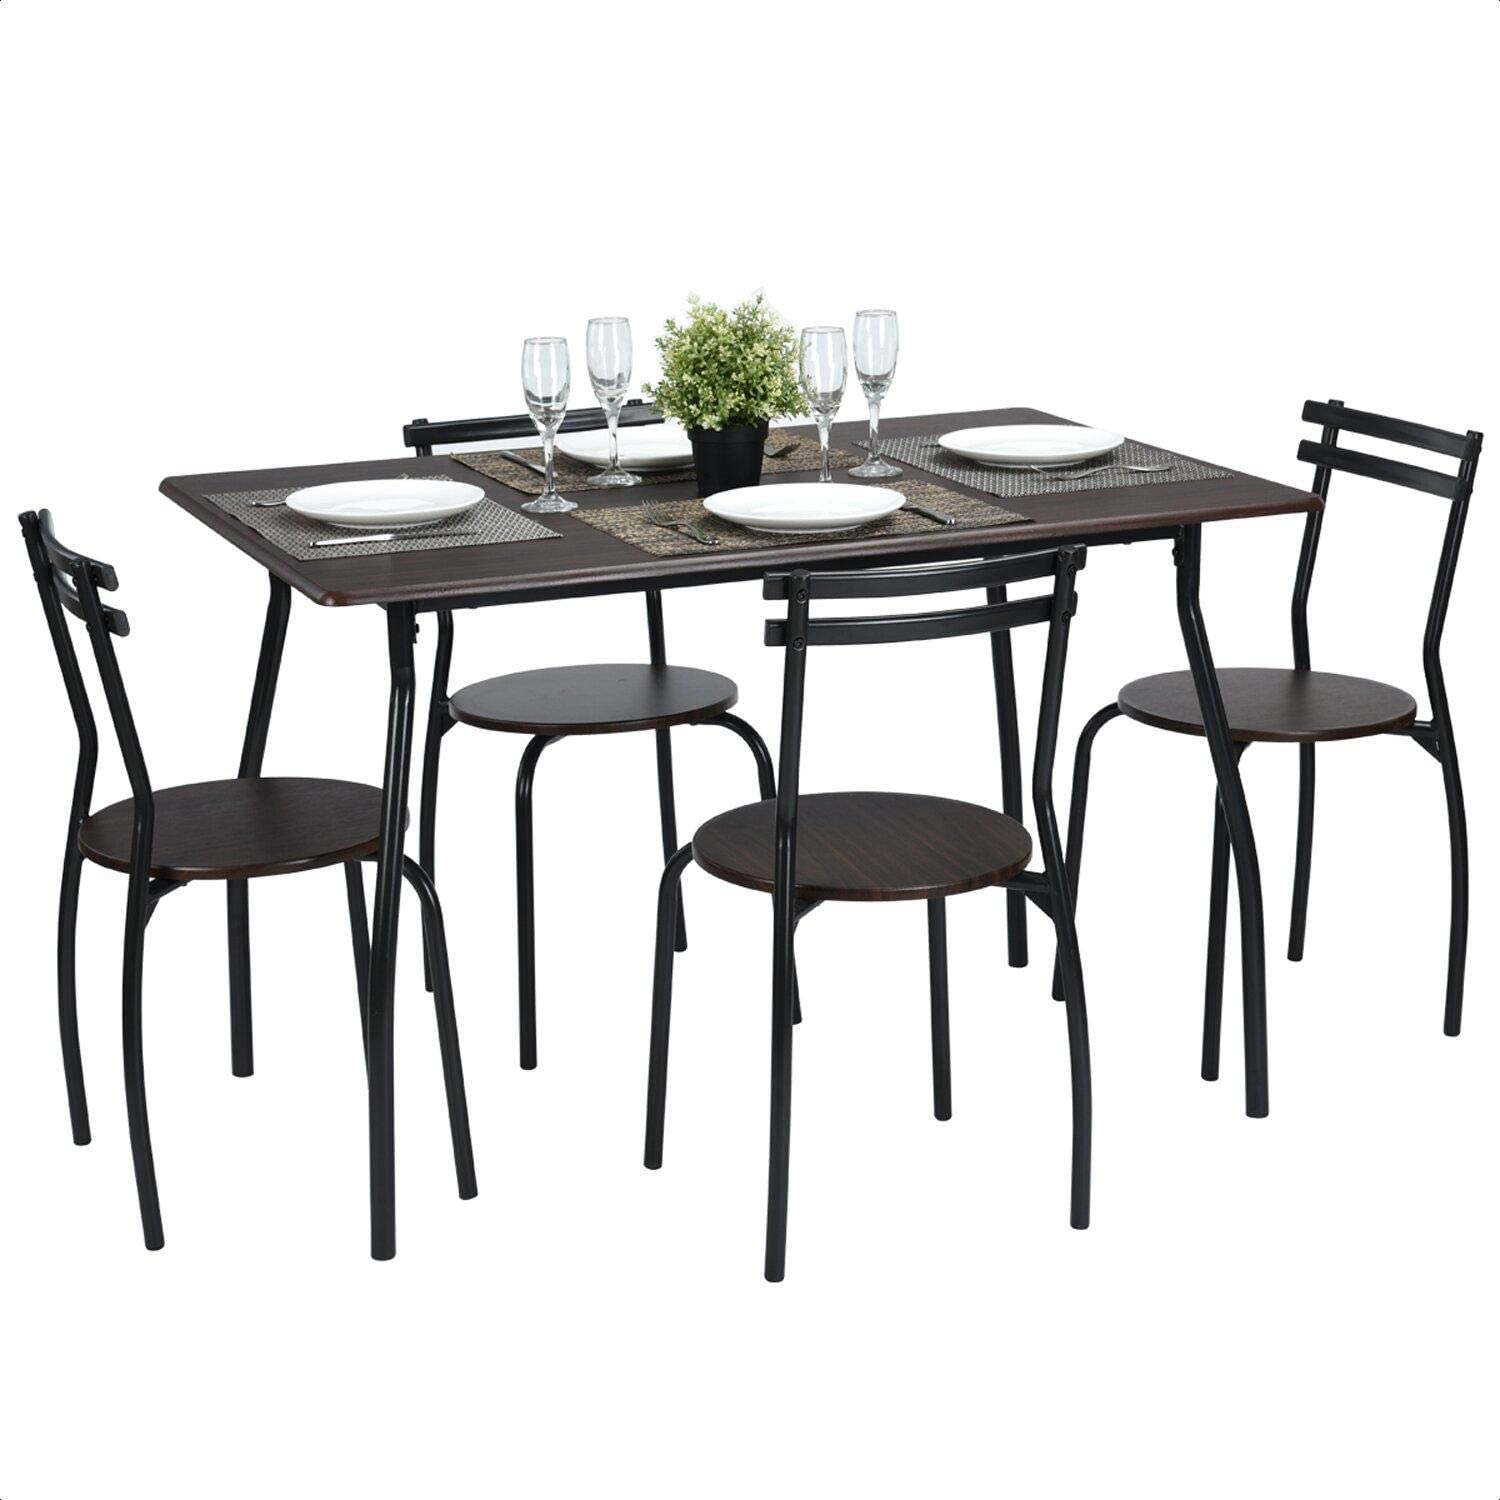 4. Best For Cheap Price: Tarleton 5 Piece Dining Set